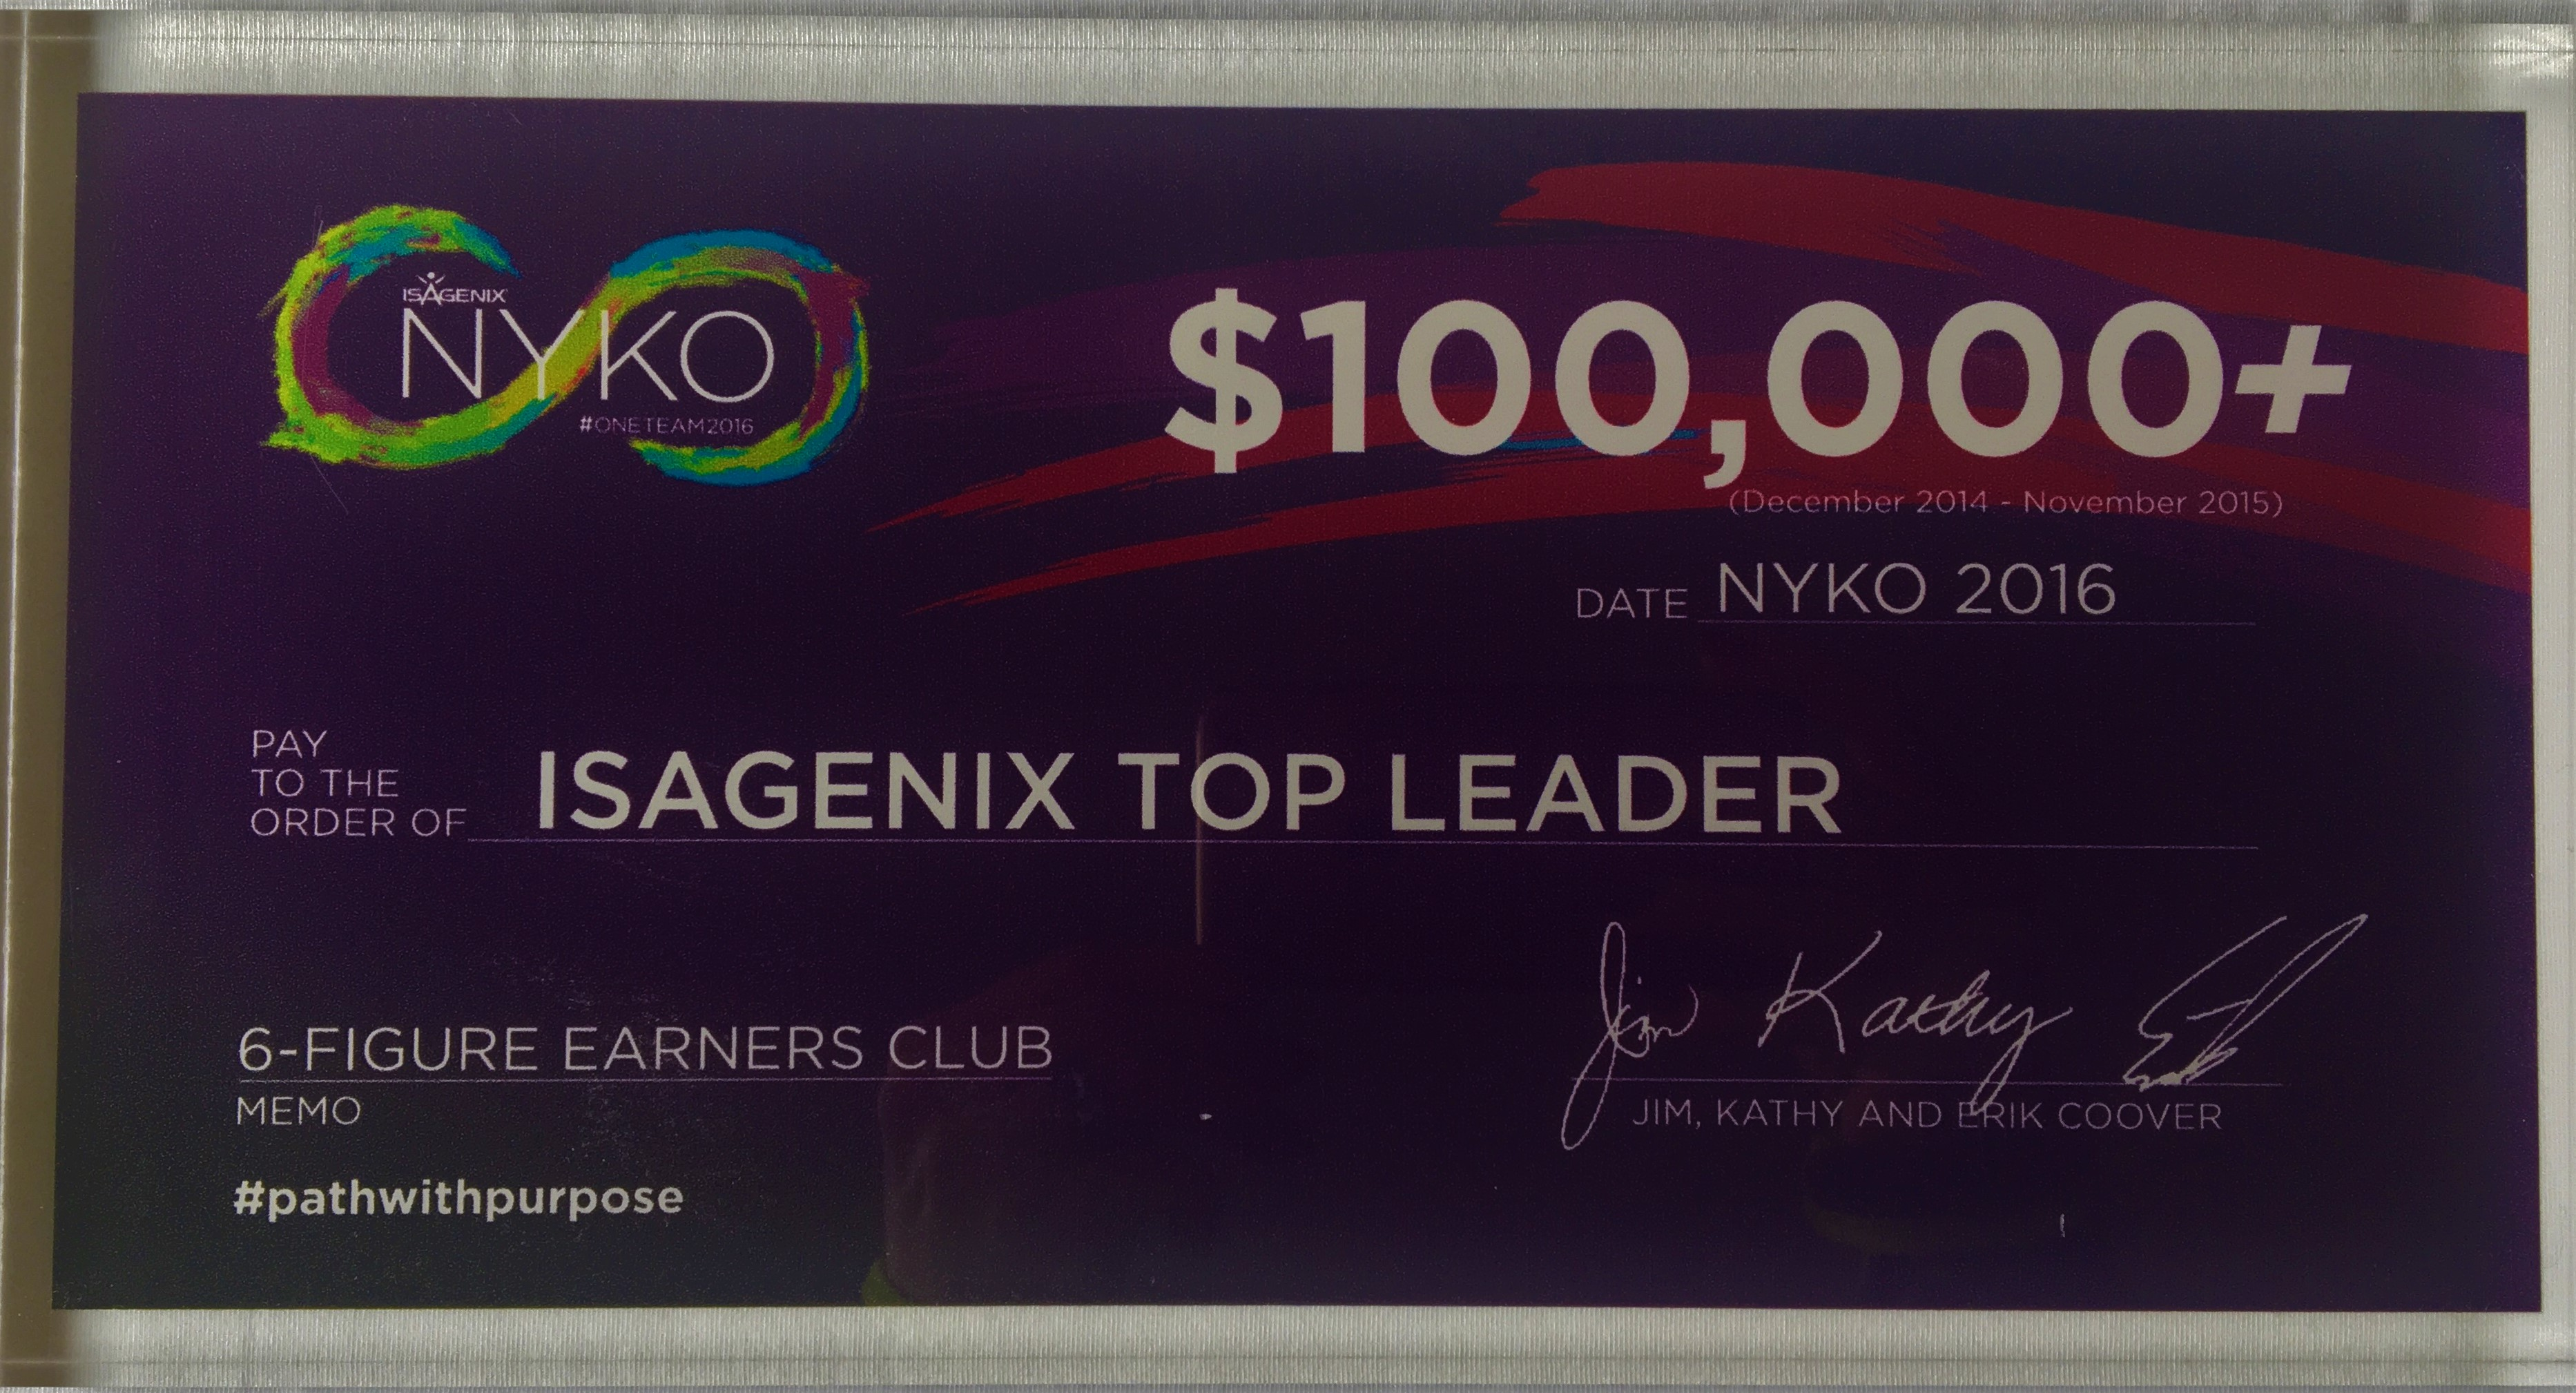 Isagenix Top Leader